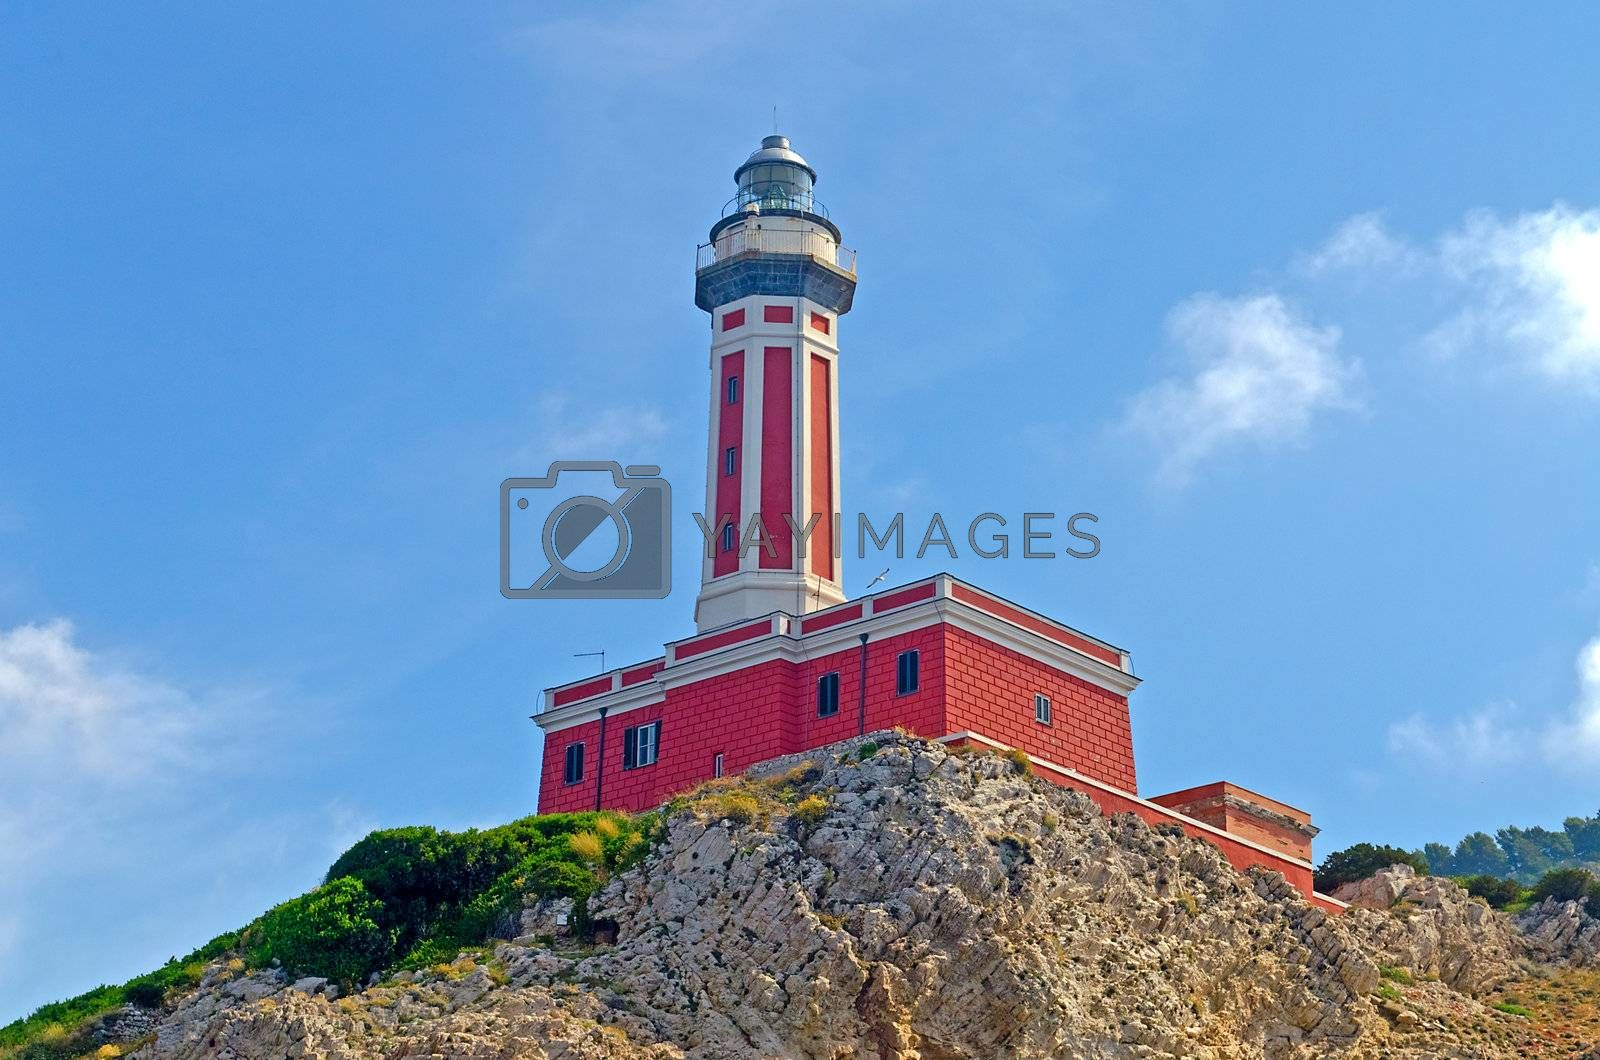 Red Lighthouse seen on the island of Capri, Italy, shot from a boat